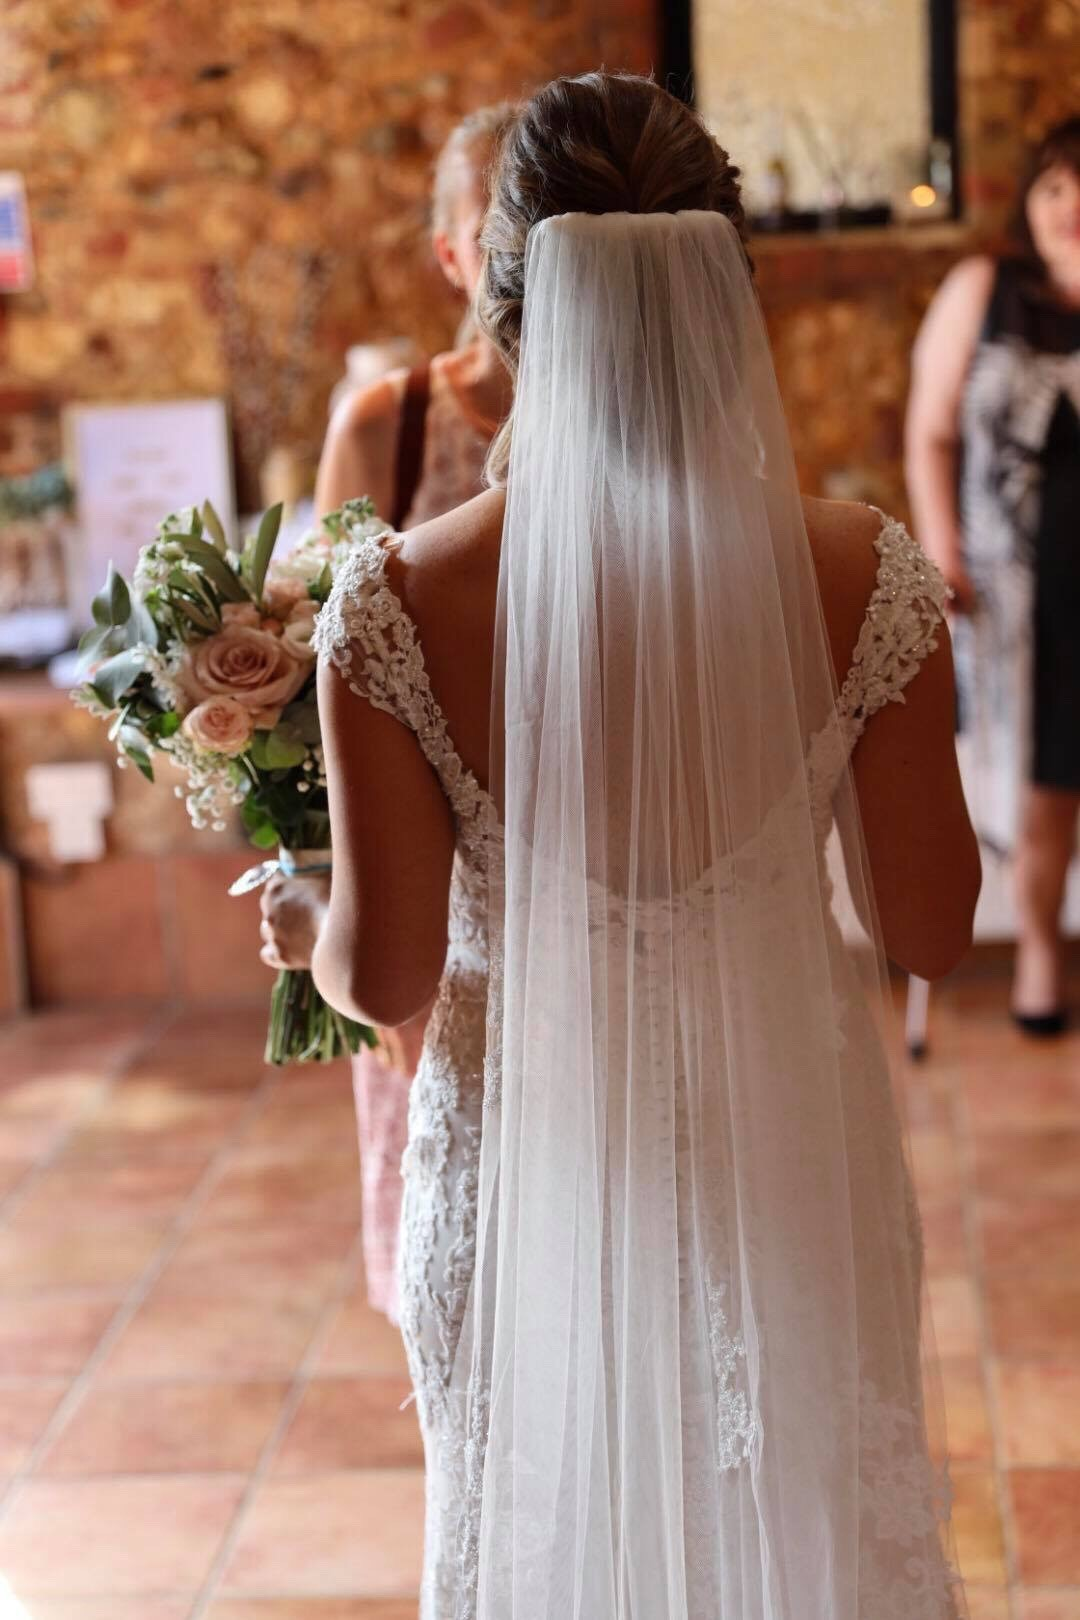 Katie v back of dress